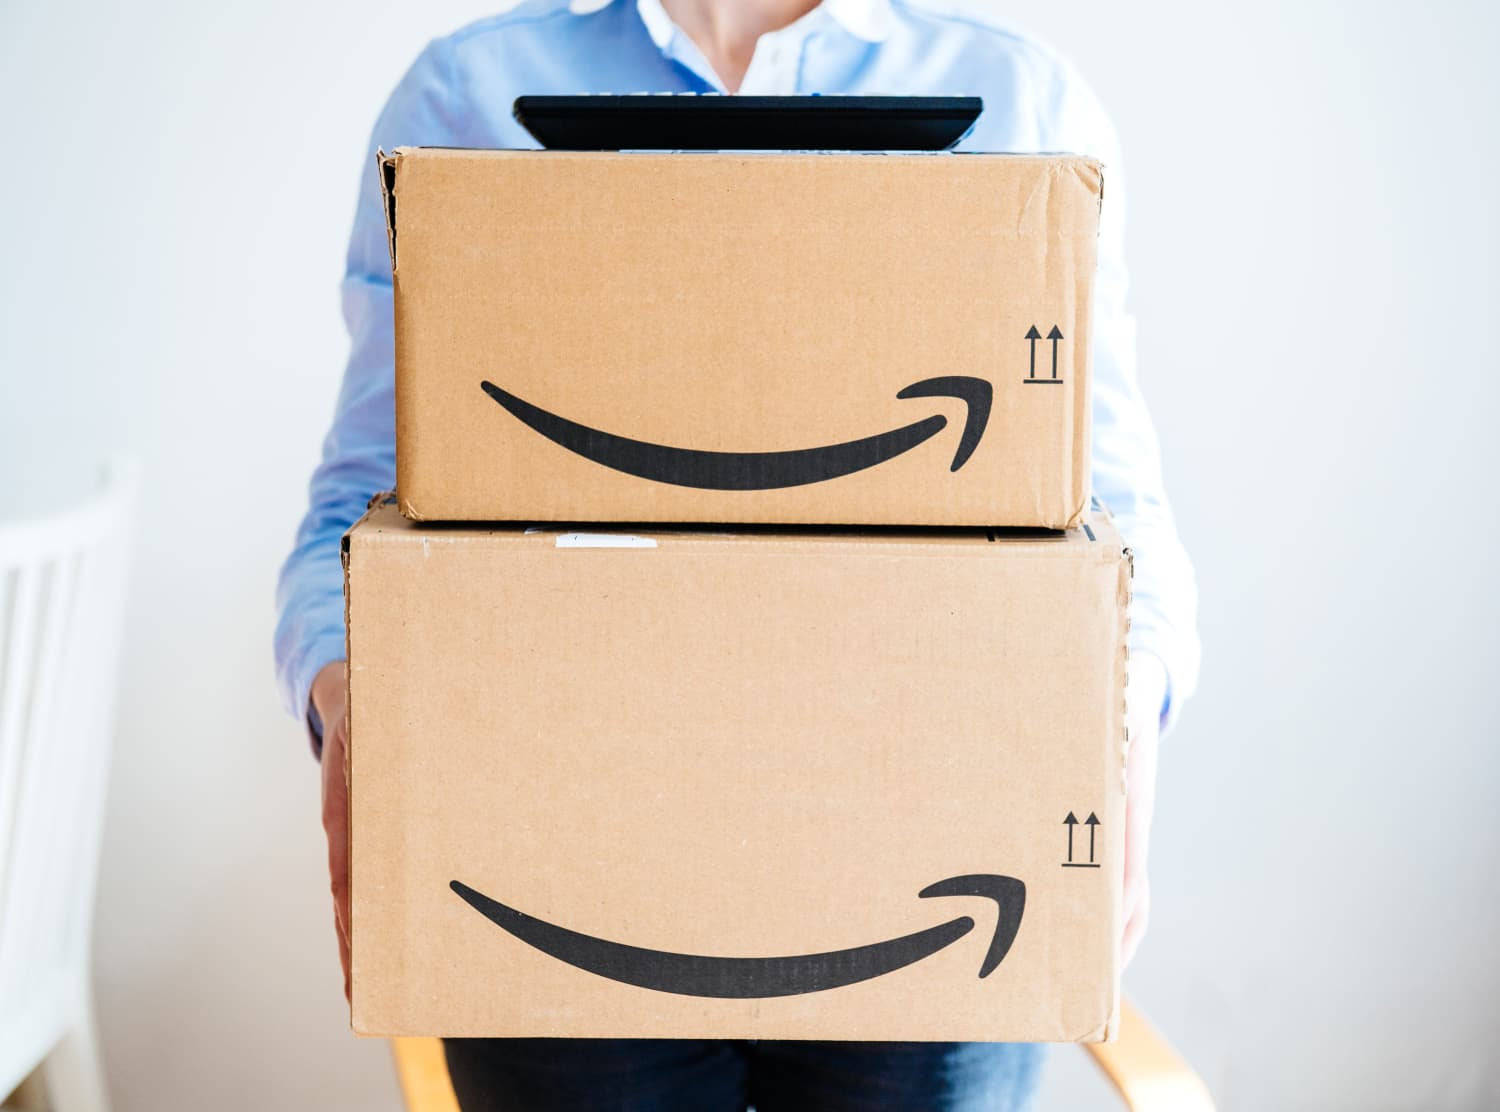 Amazon's Most Underrated Perks, According to Prime Members